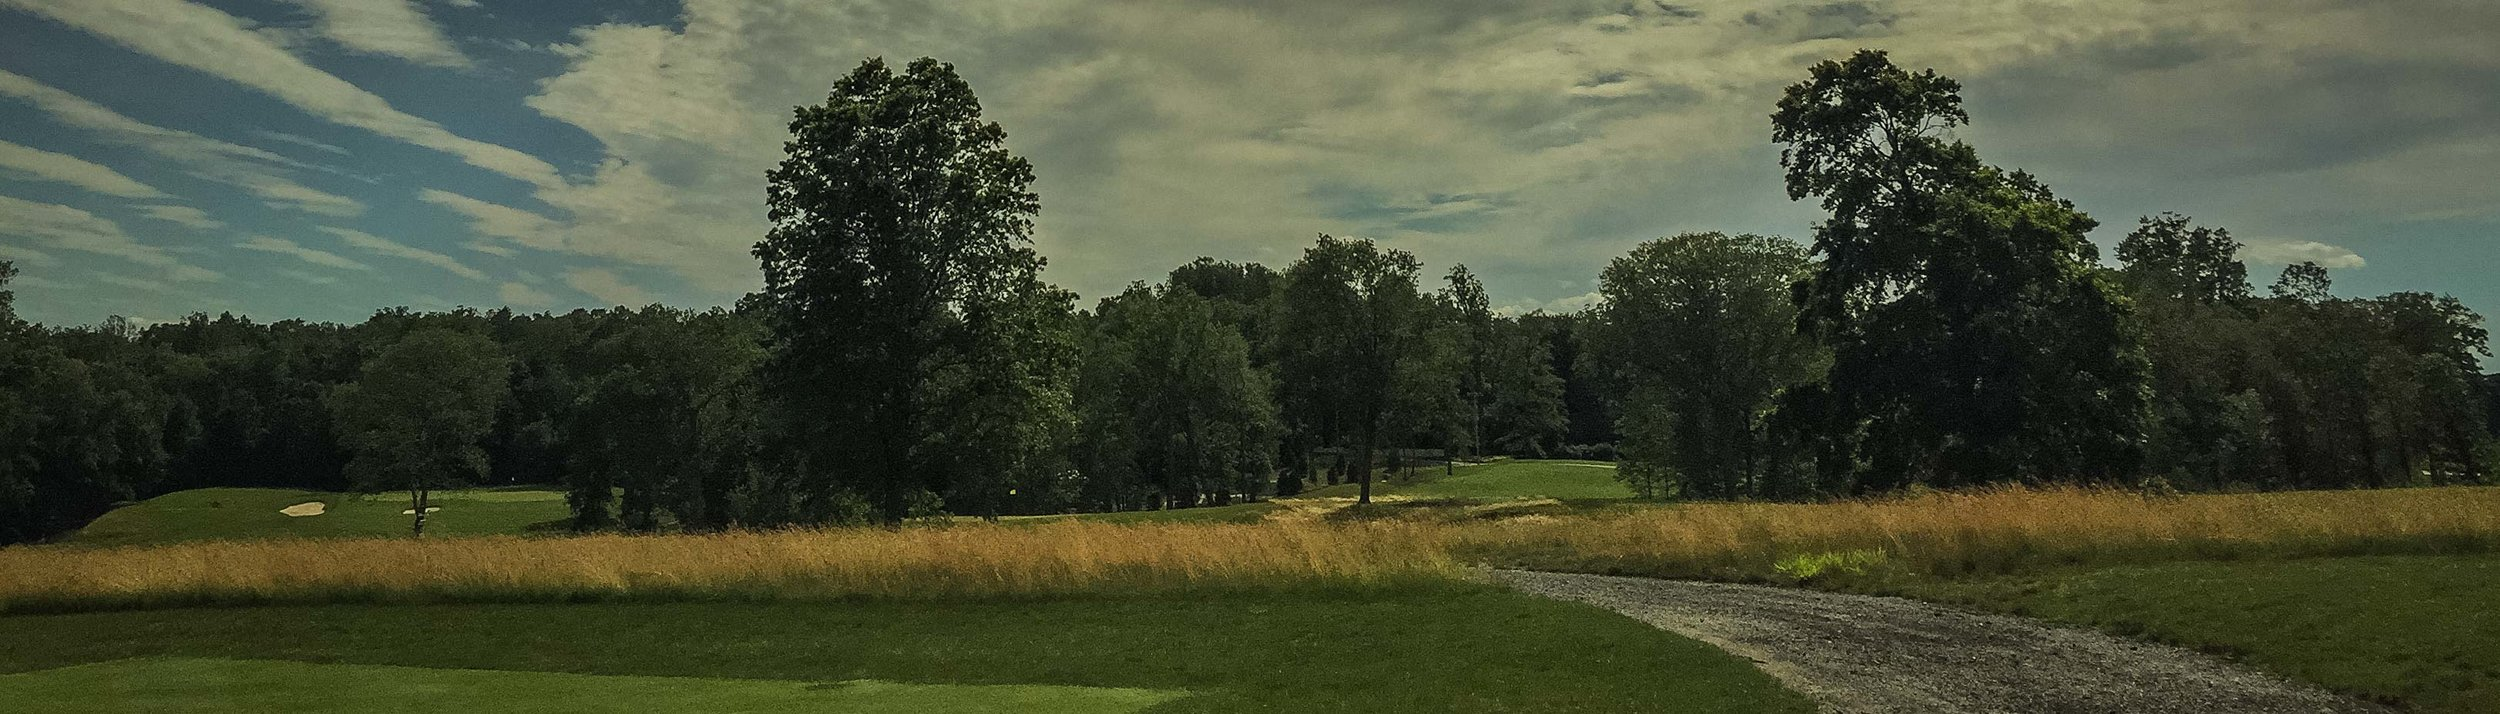 Golf Course SCC 2018- HAP (9 of 33).jpg